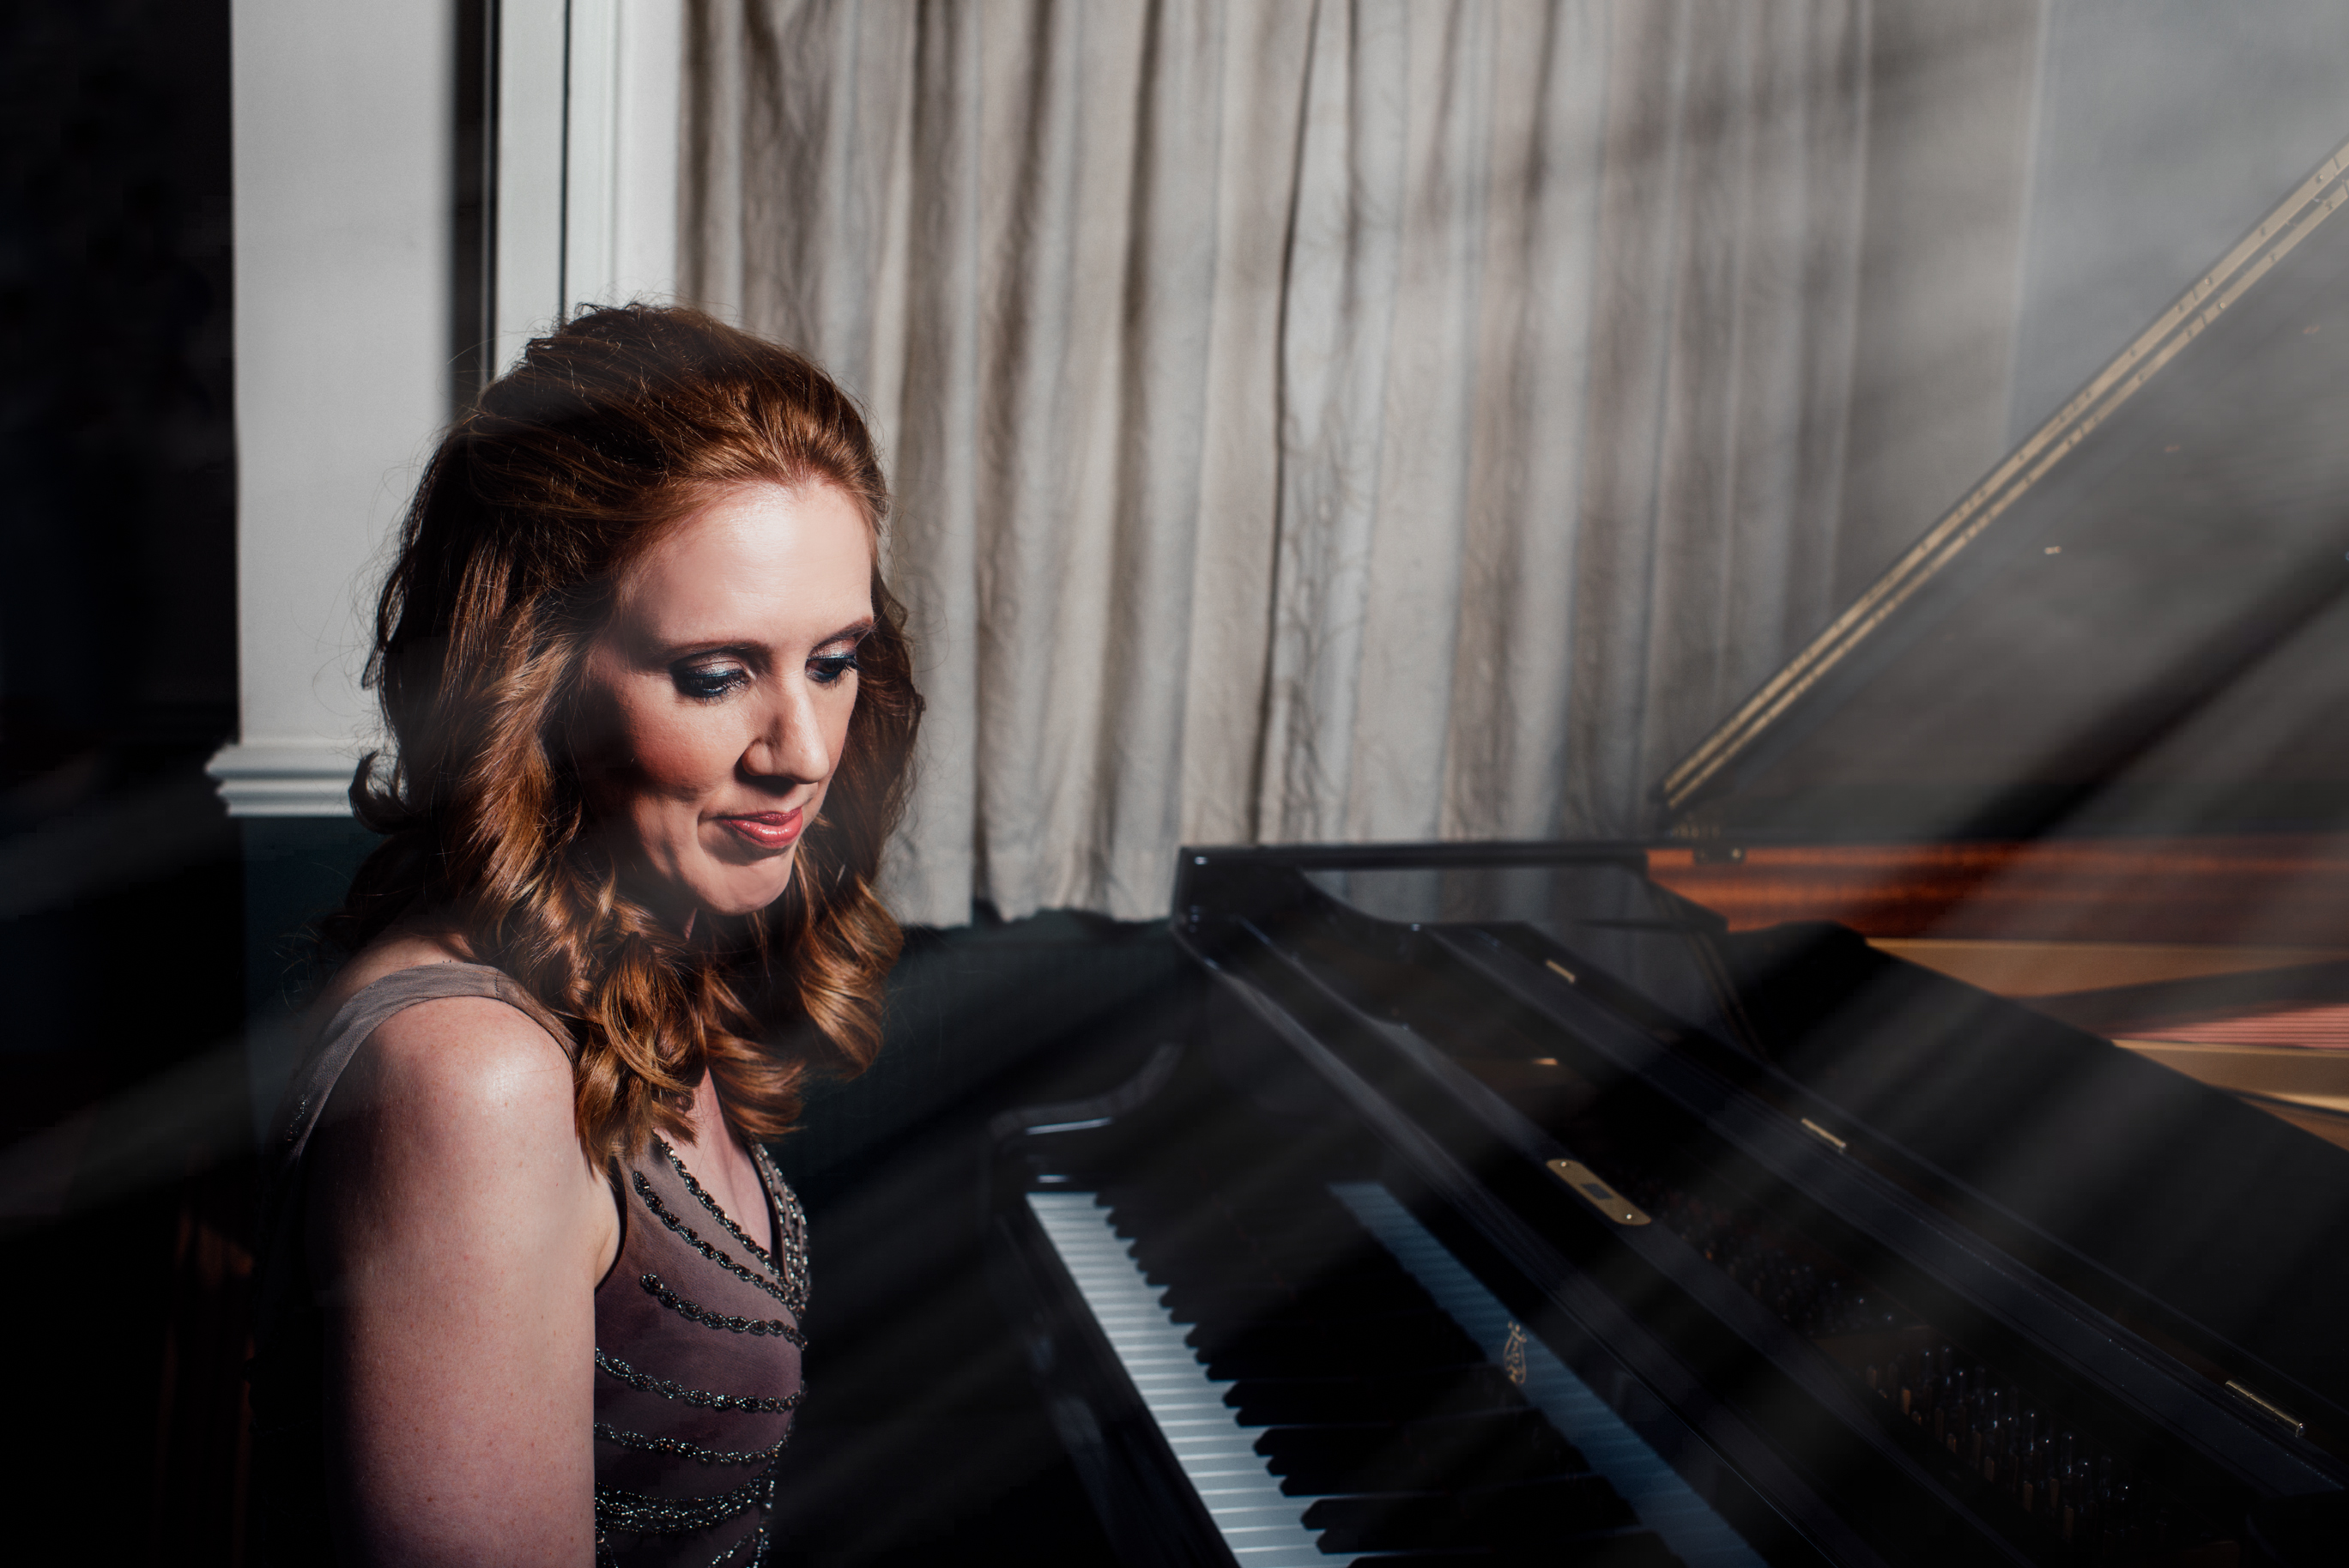 Sarah Beth Briggs seated at the piano